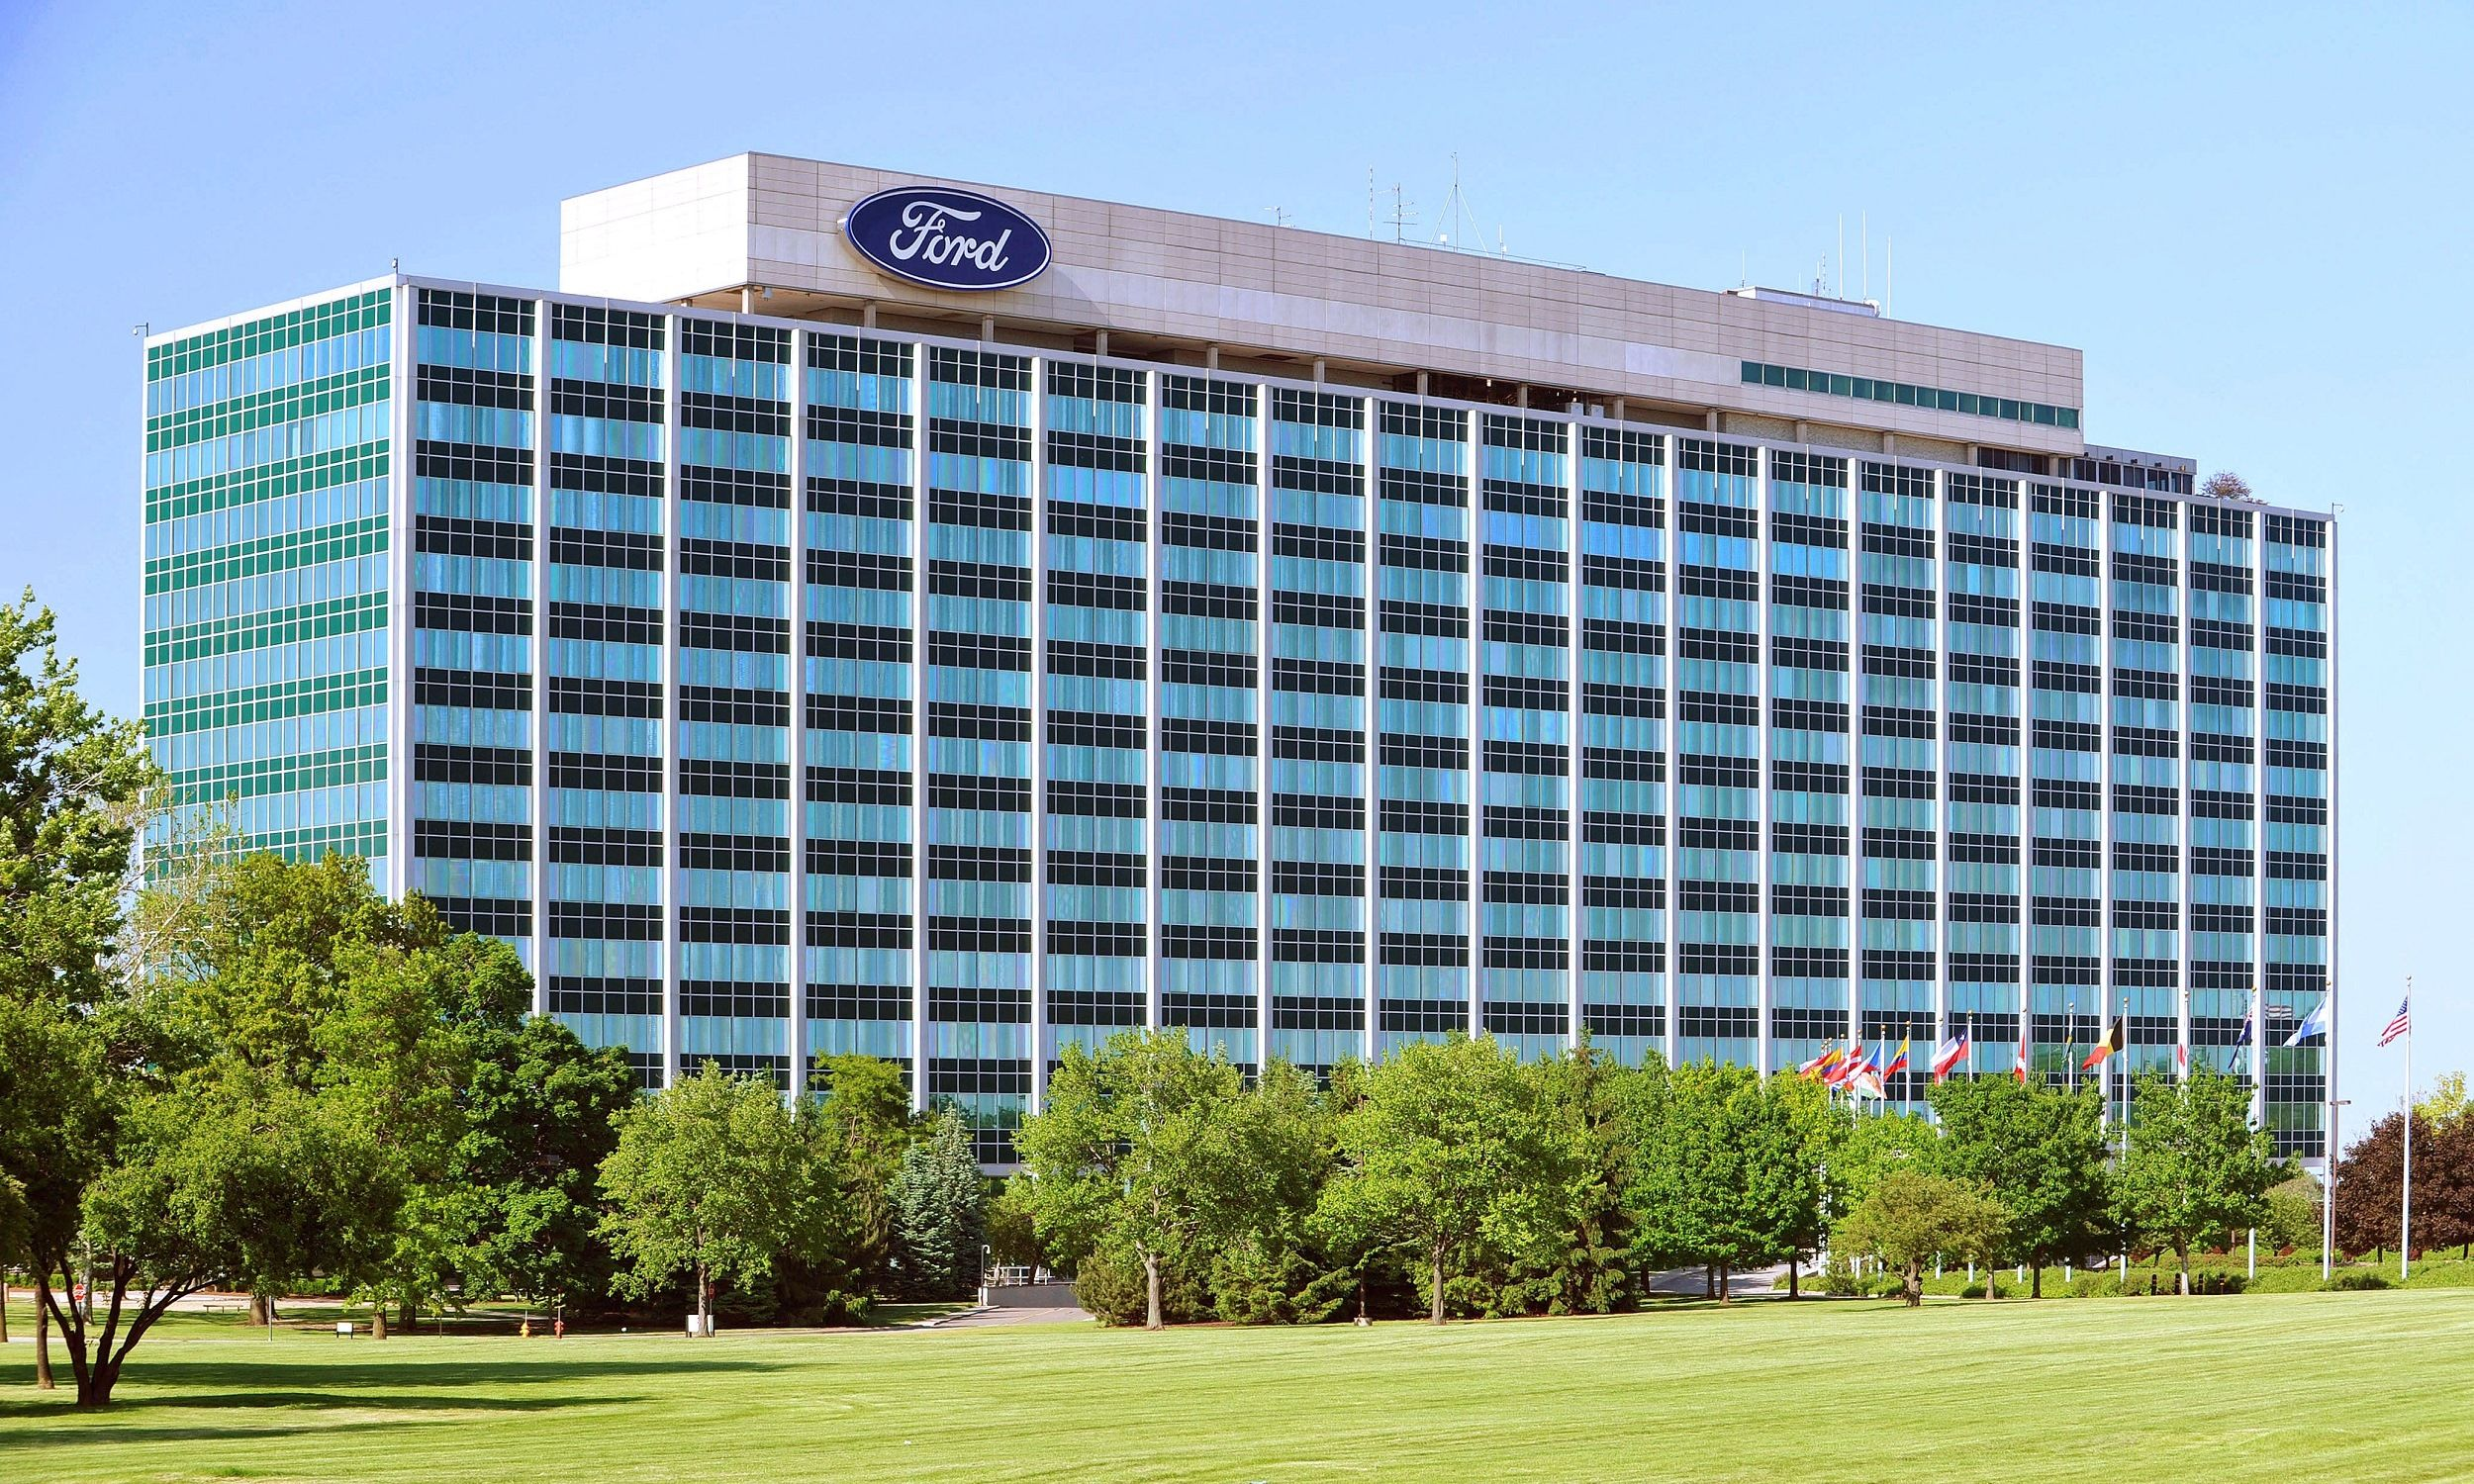 Fbi Searches Ford Headquarters With Images Ford Motor Company